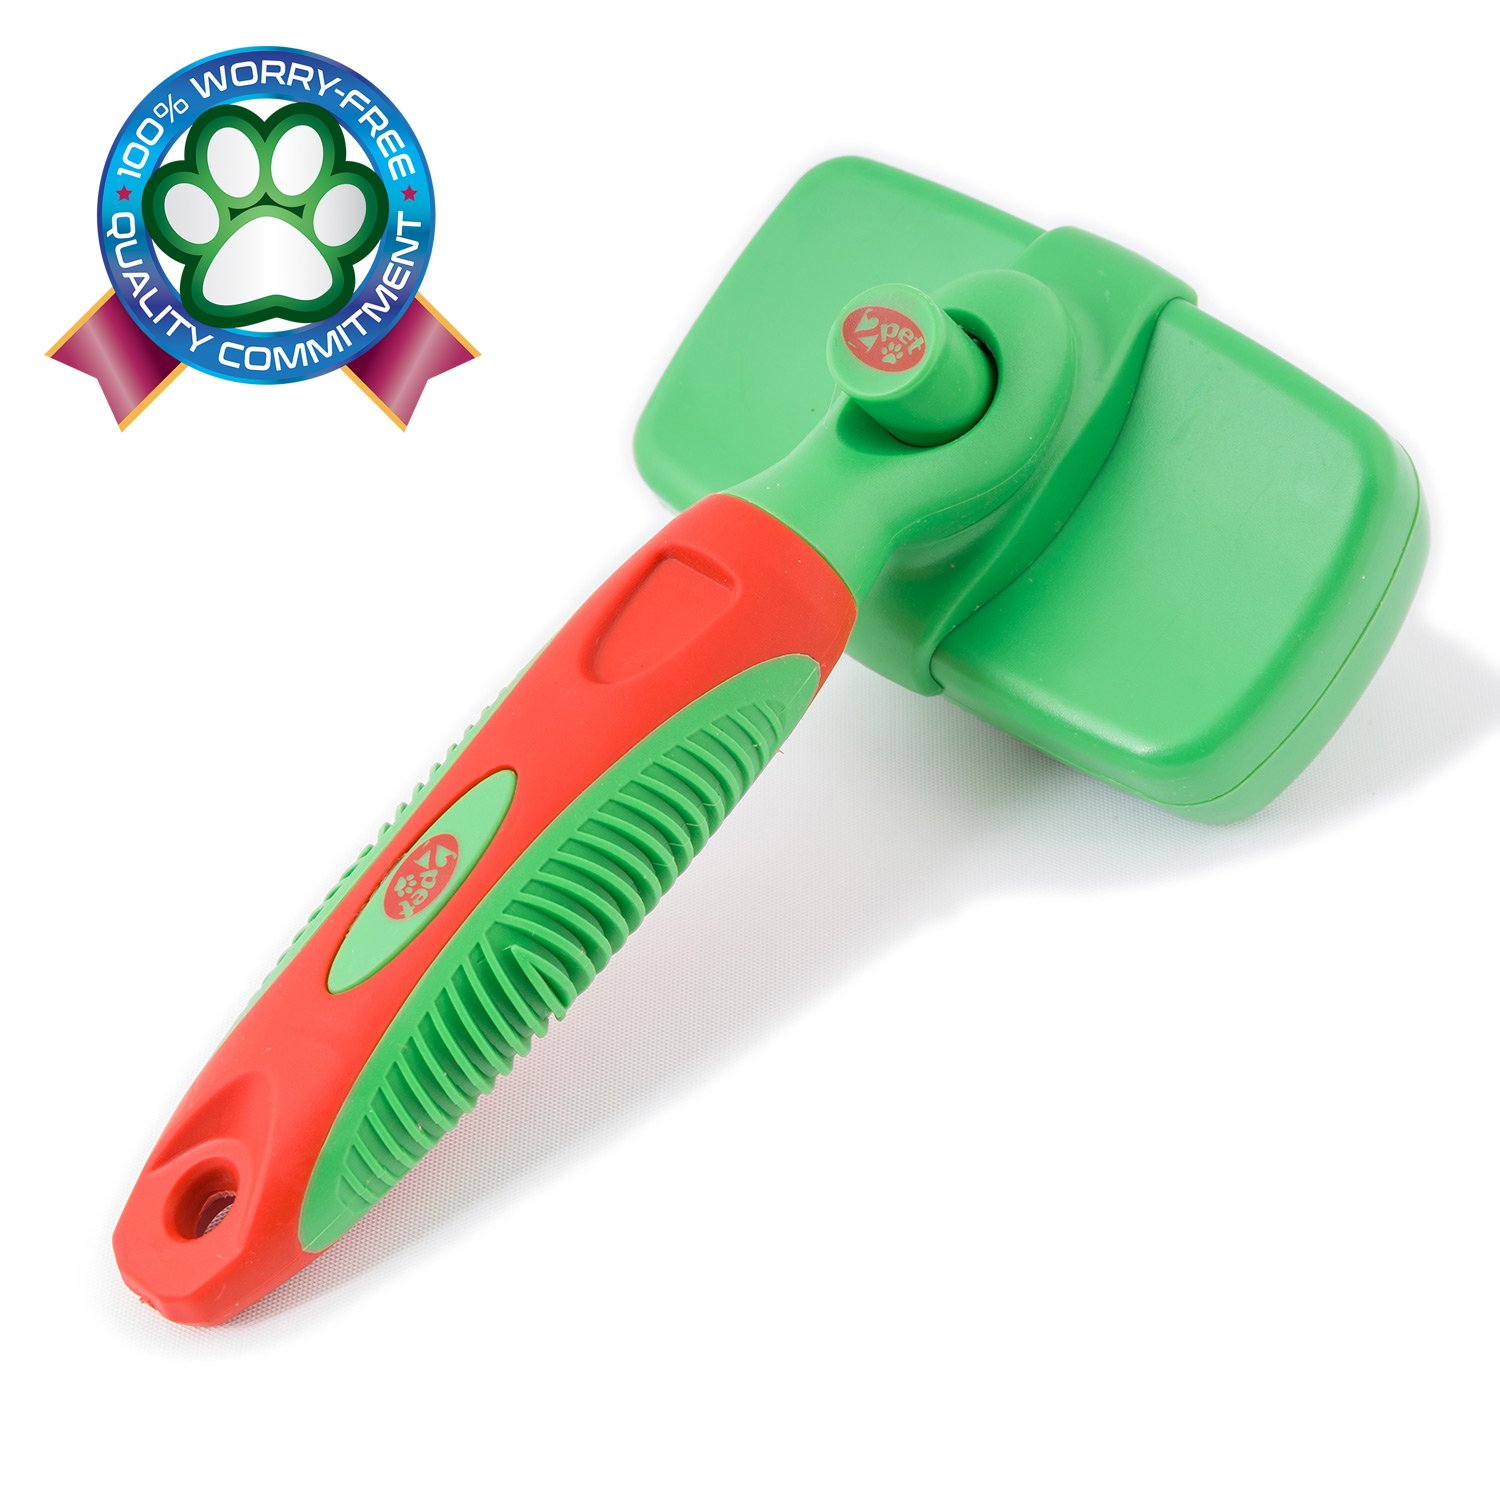 2PET KNOTS AWAY Slicker Brush – Self Cleaning Dog Brush for Medium to Long Hair – Dog Brush for All Sizes & Breeds to Remove Mats & Tangles, Reduce Shedding. Guardian Green - Select your size.